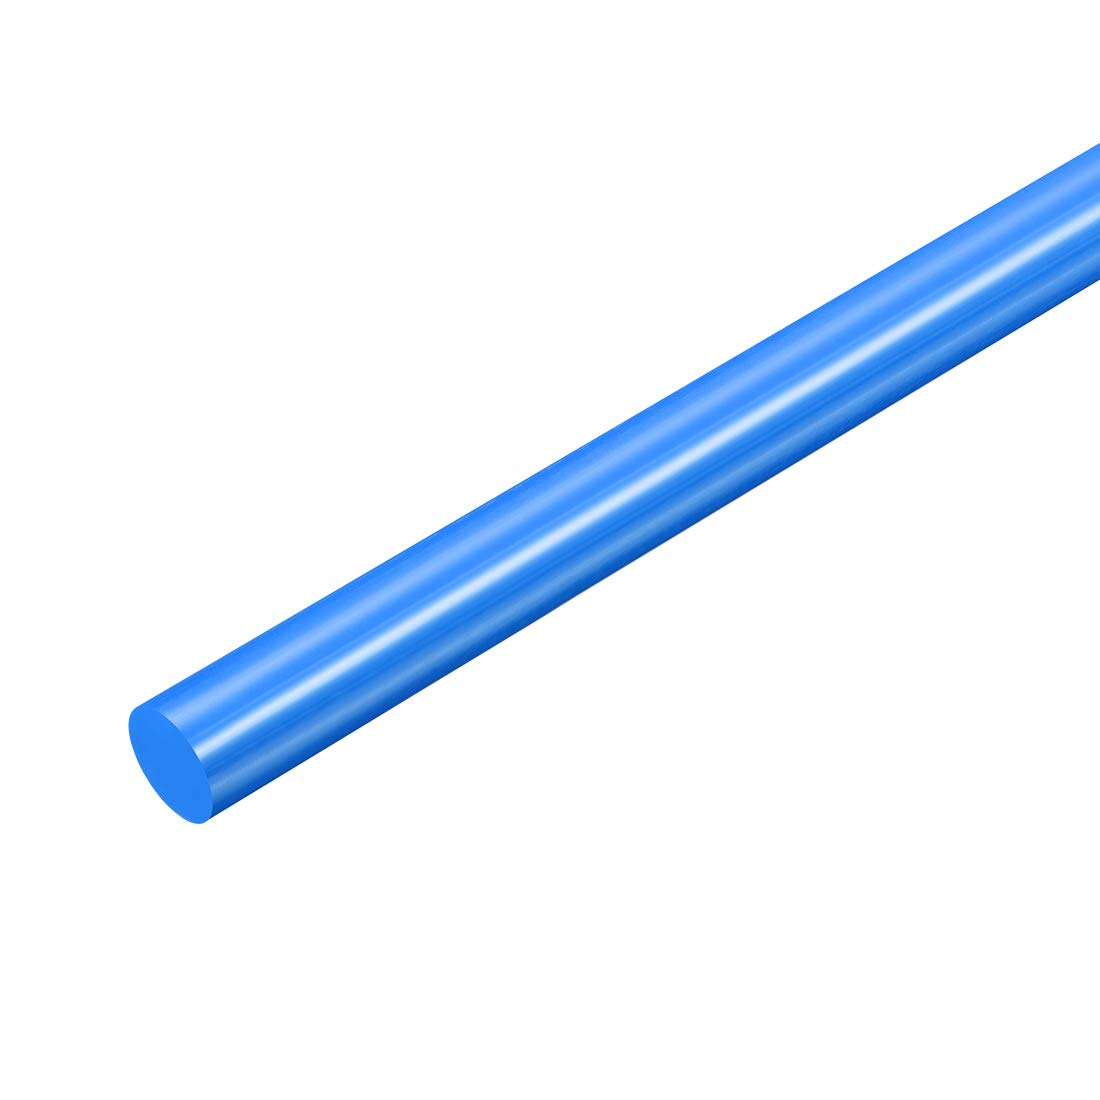 sourcing map Plastic Round Rod 8mm POM 5//16 Dia 20 Length Blue Engineering Plastic Round Bar Polyoxymethylene Rods